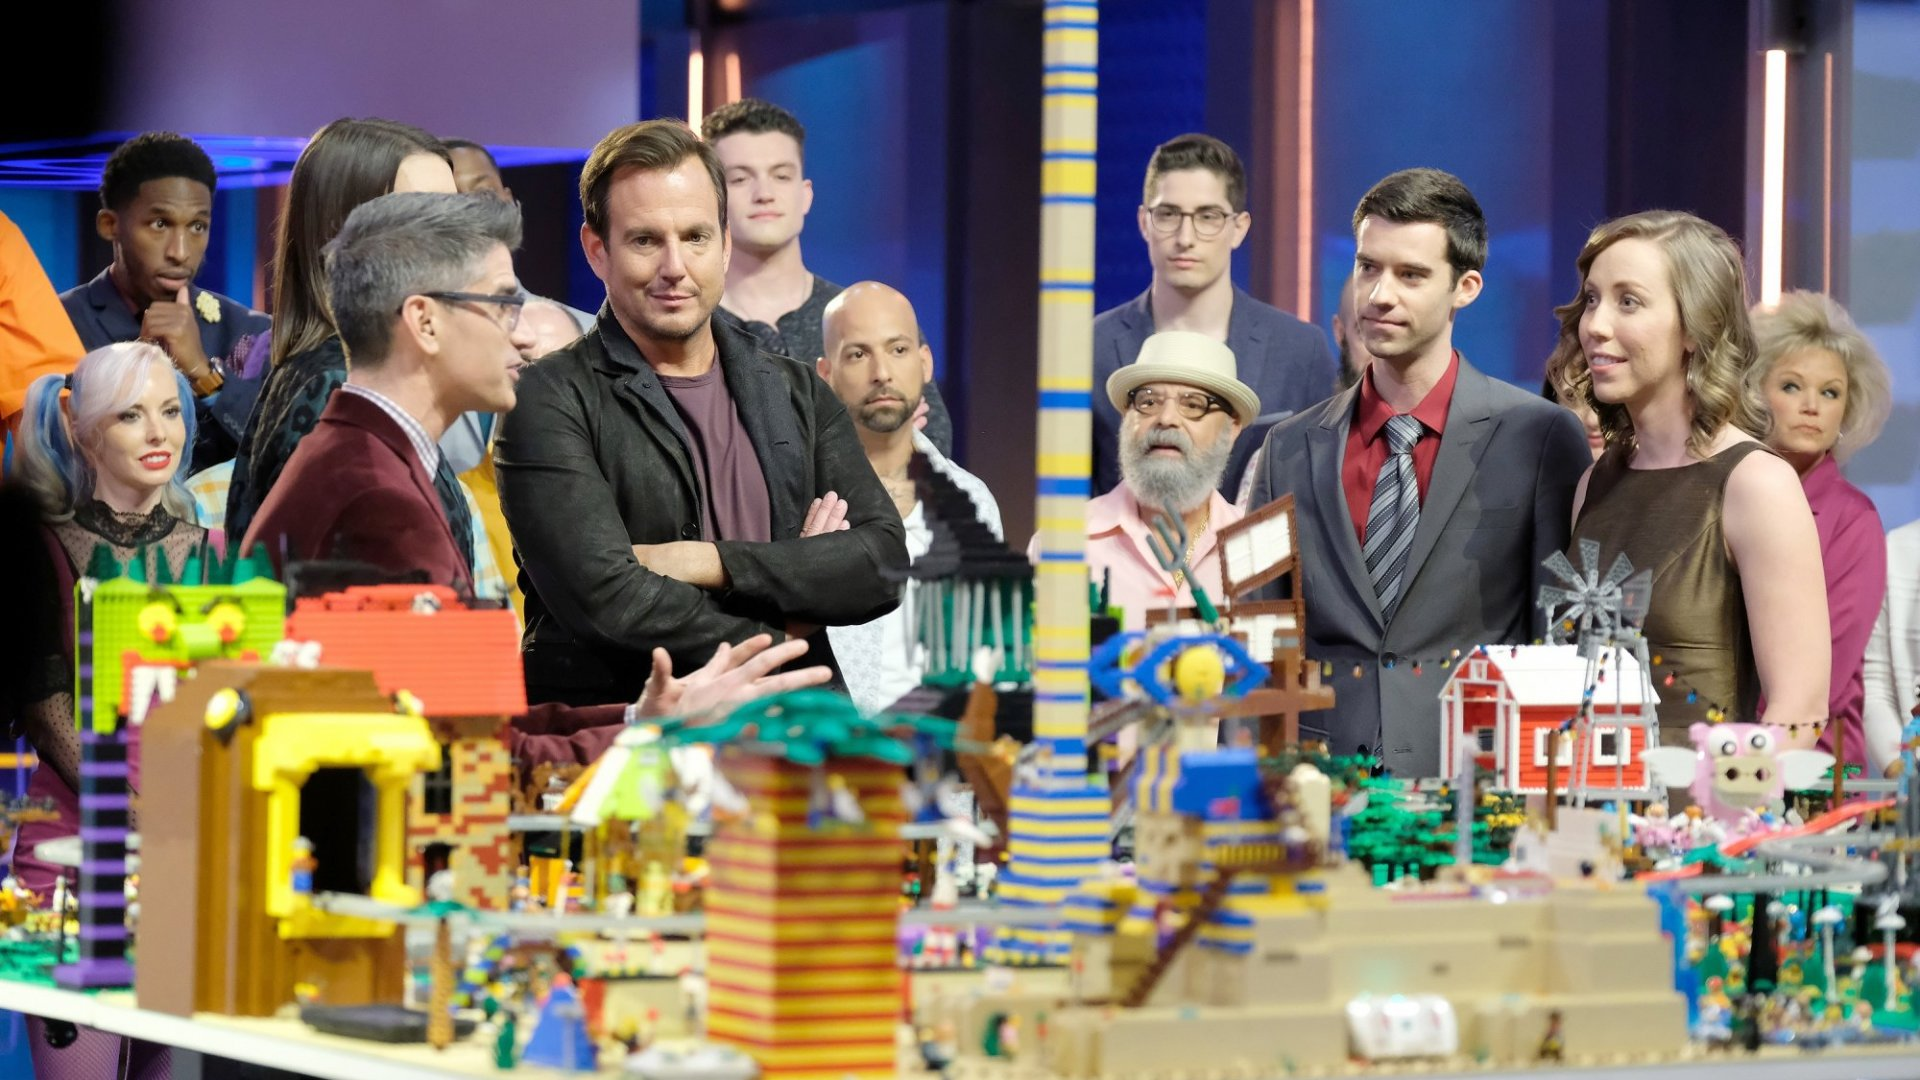 'Lego Masters' Is a Celebration of Creativity, Play, and Engineering. Here's Why Every Leader Should Watch